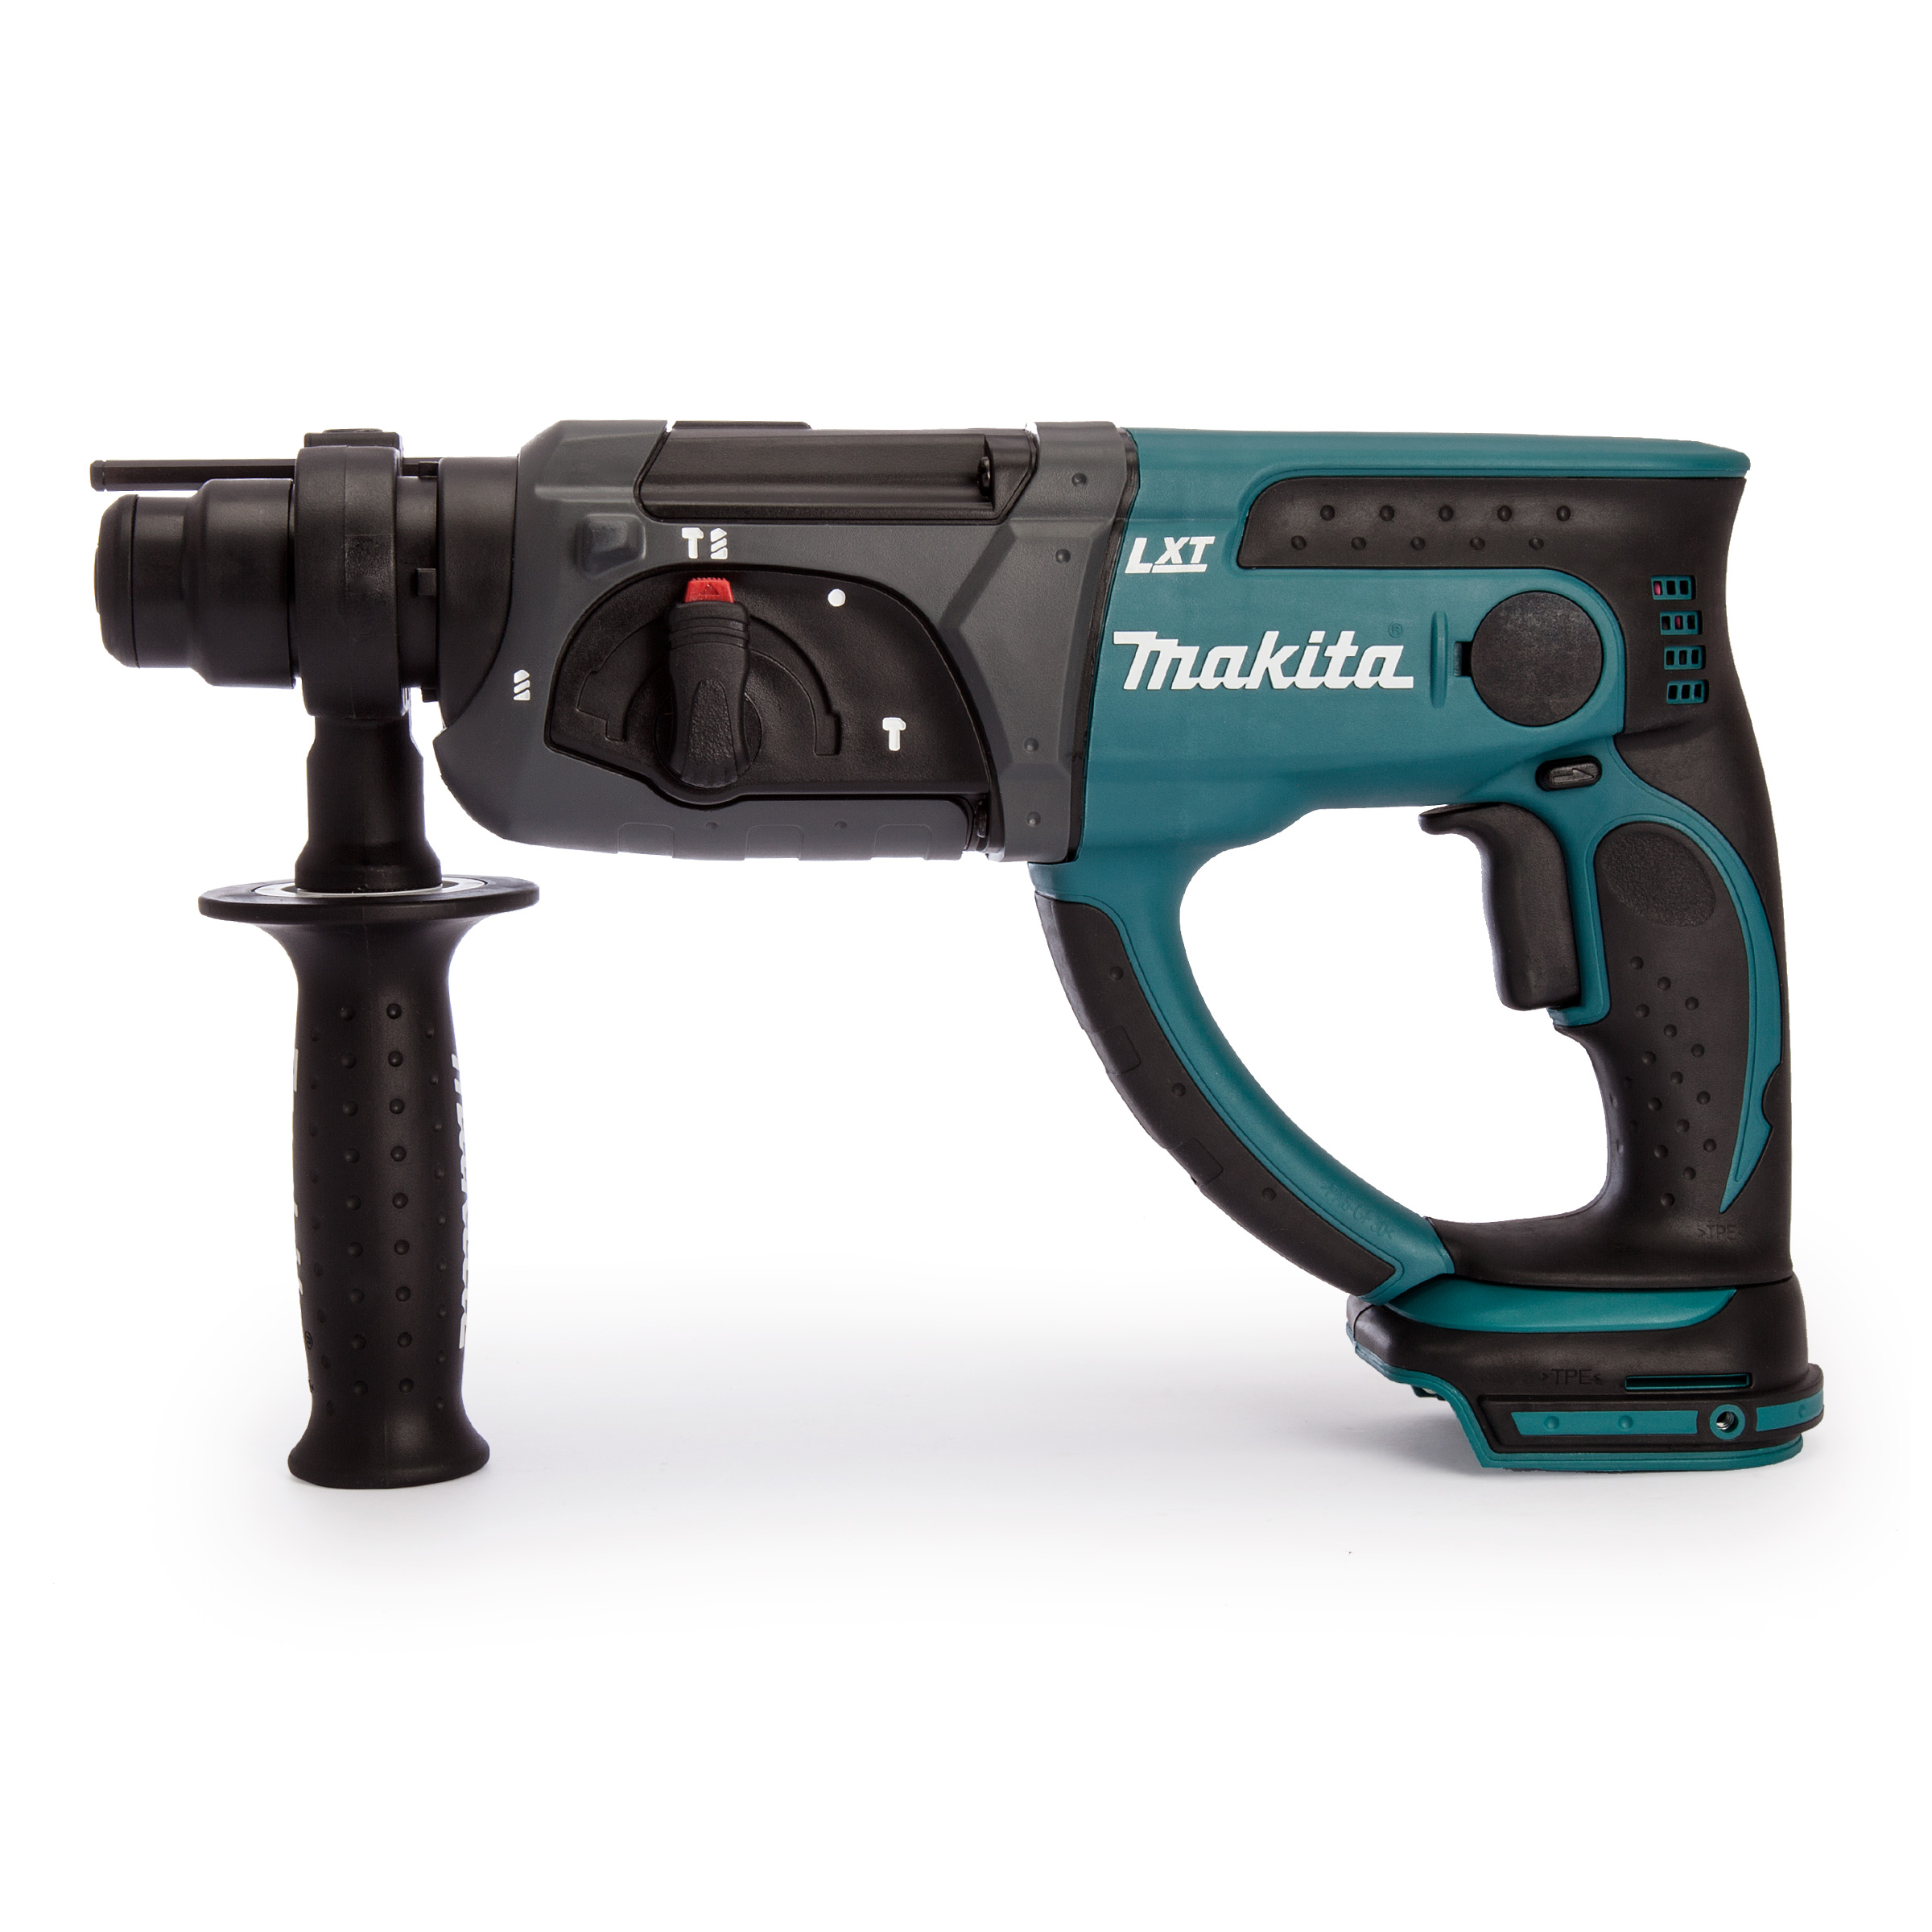 MAKITA 18V BRUSHED 3-MODE SDS HAMMER DRILL - DHR202 - BODY ONLY